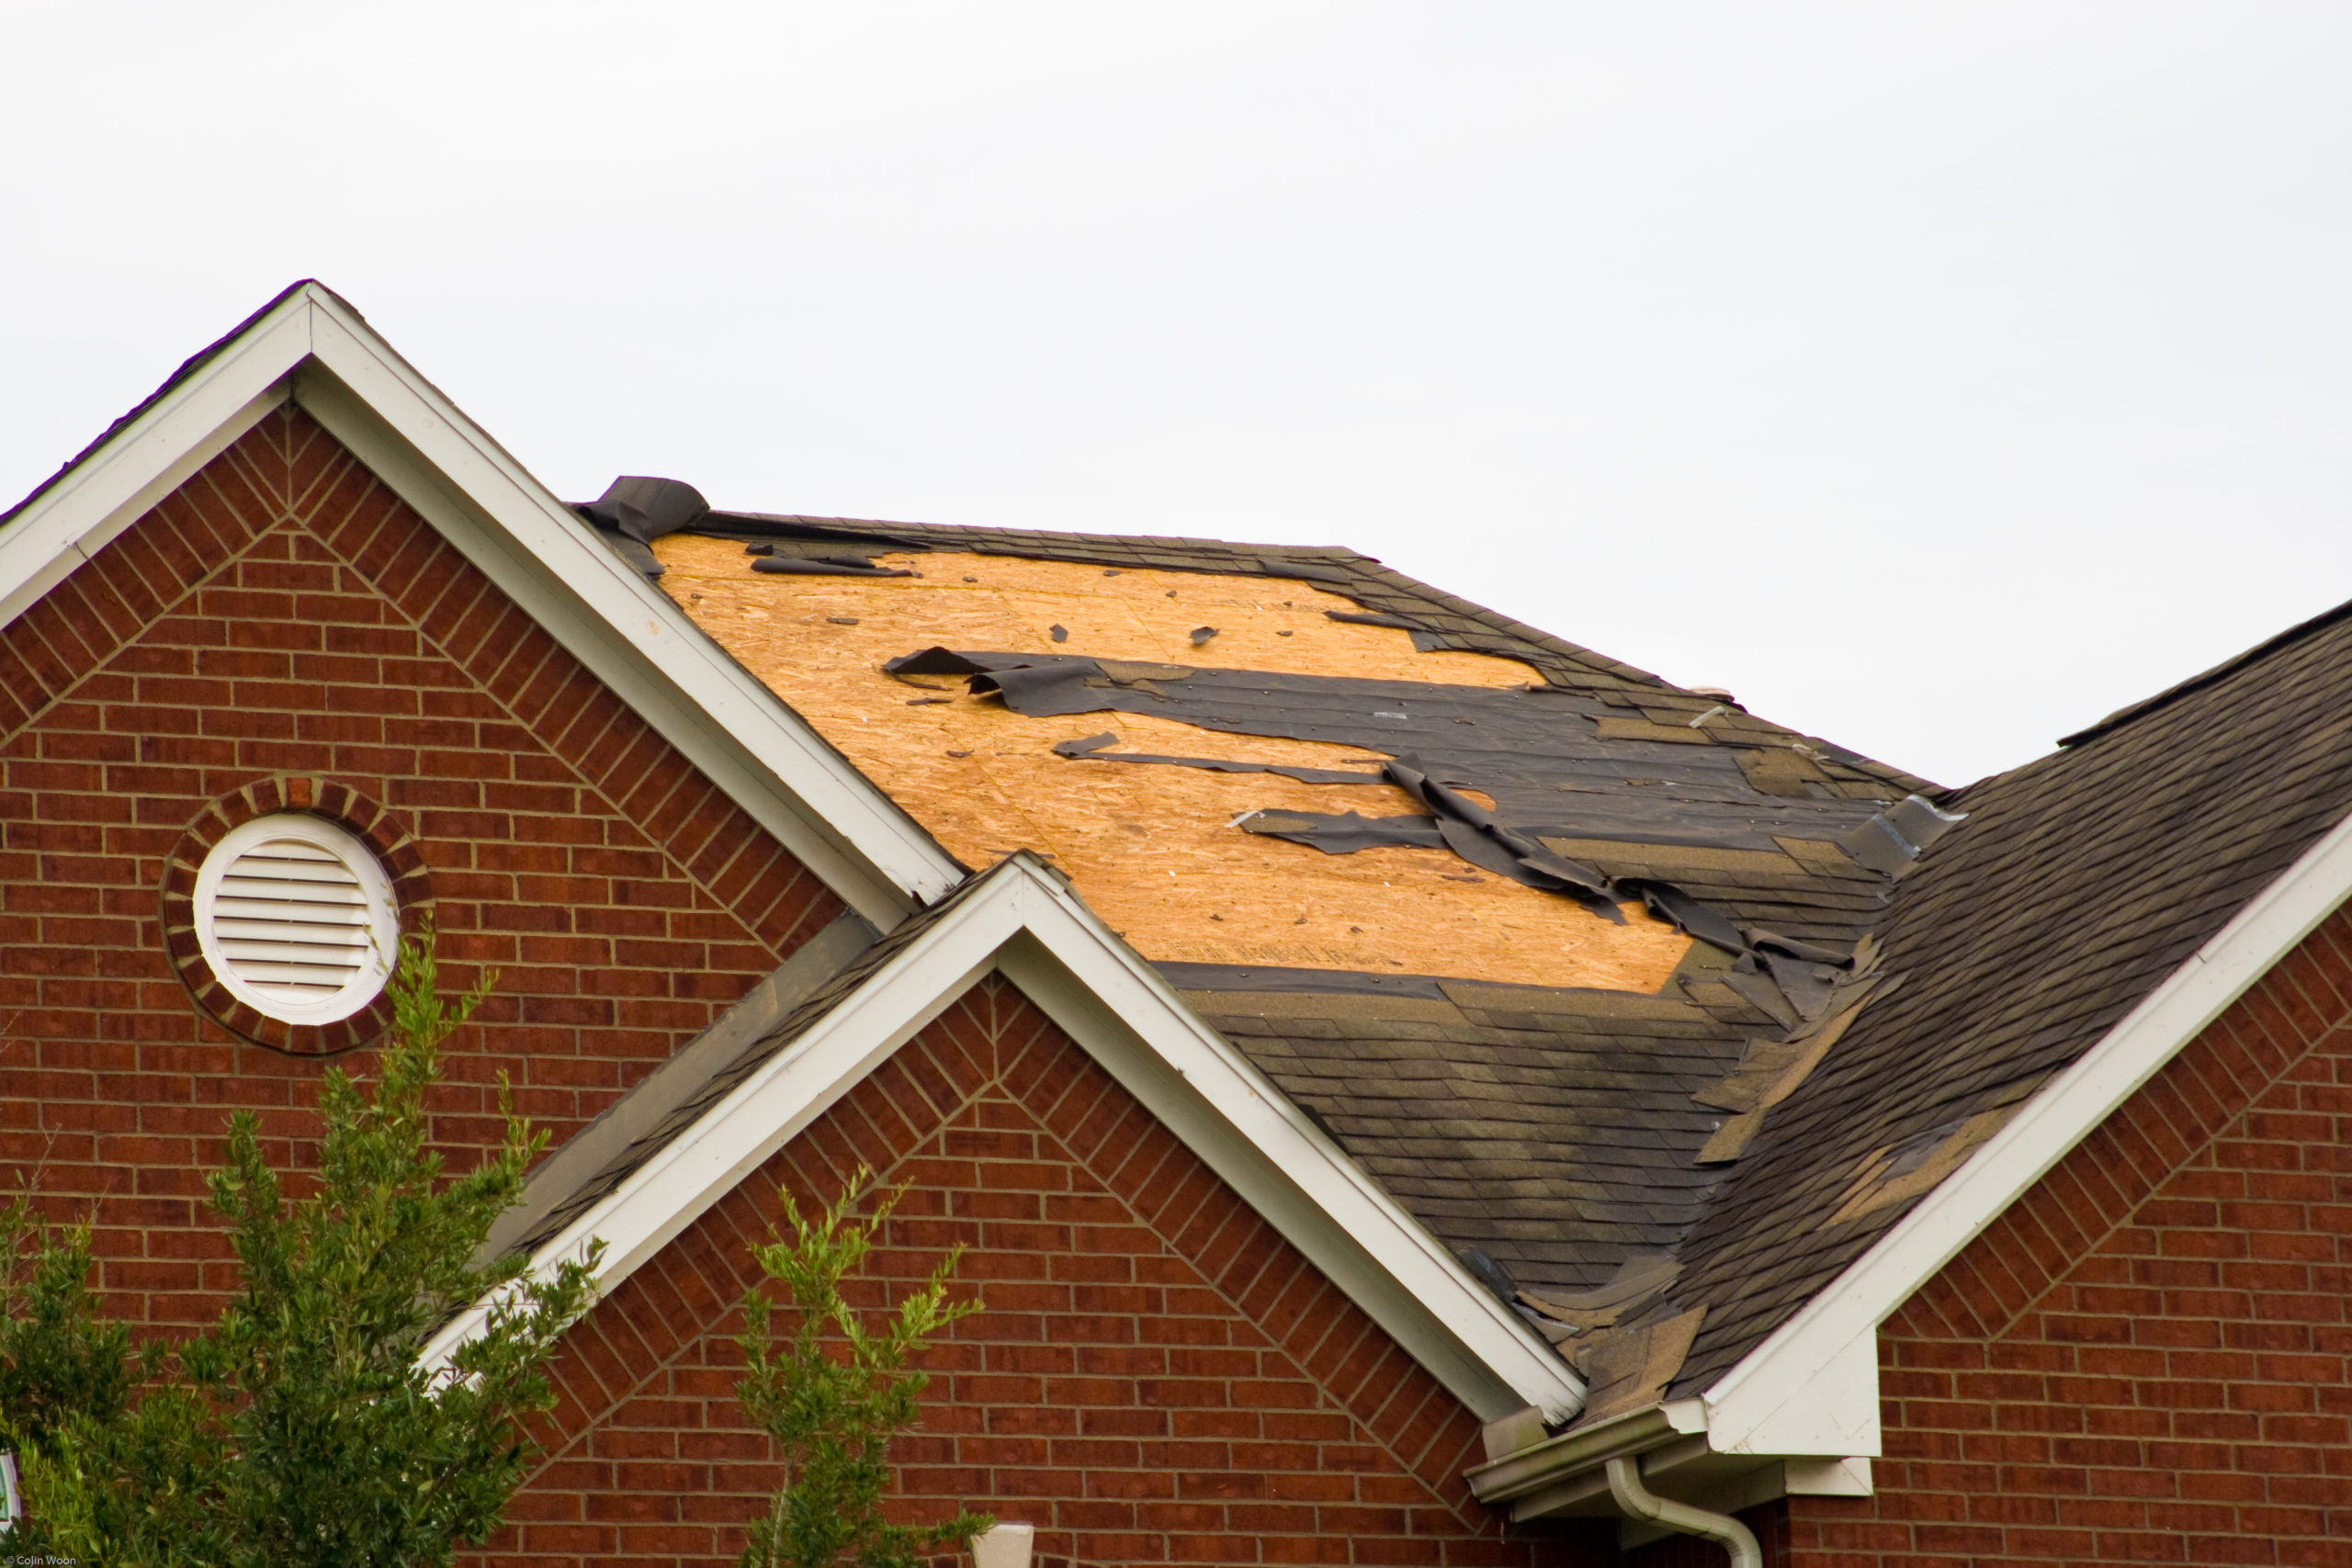 Roofs lifted from houses on Brown Street in Portlaw